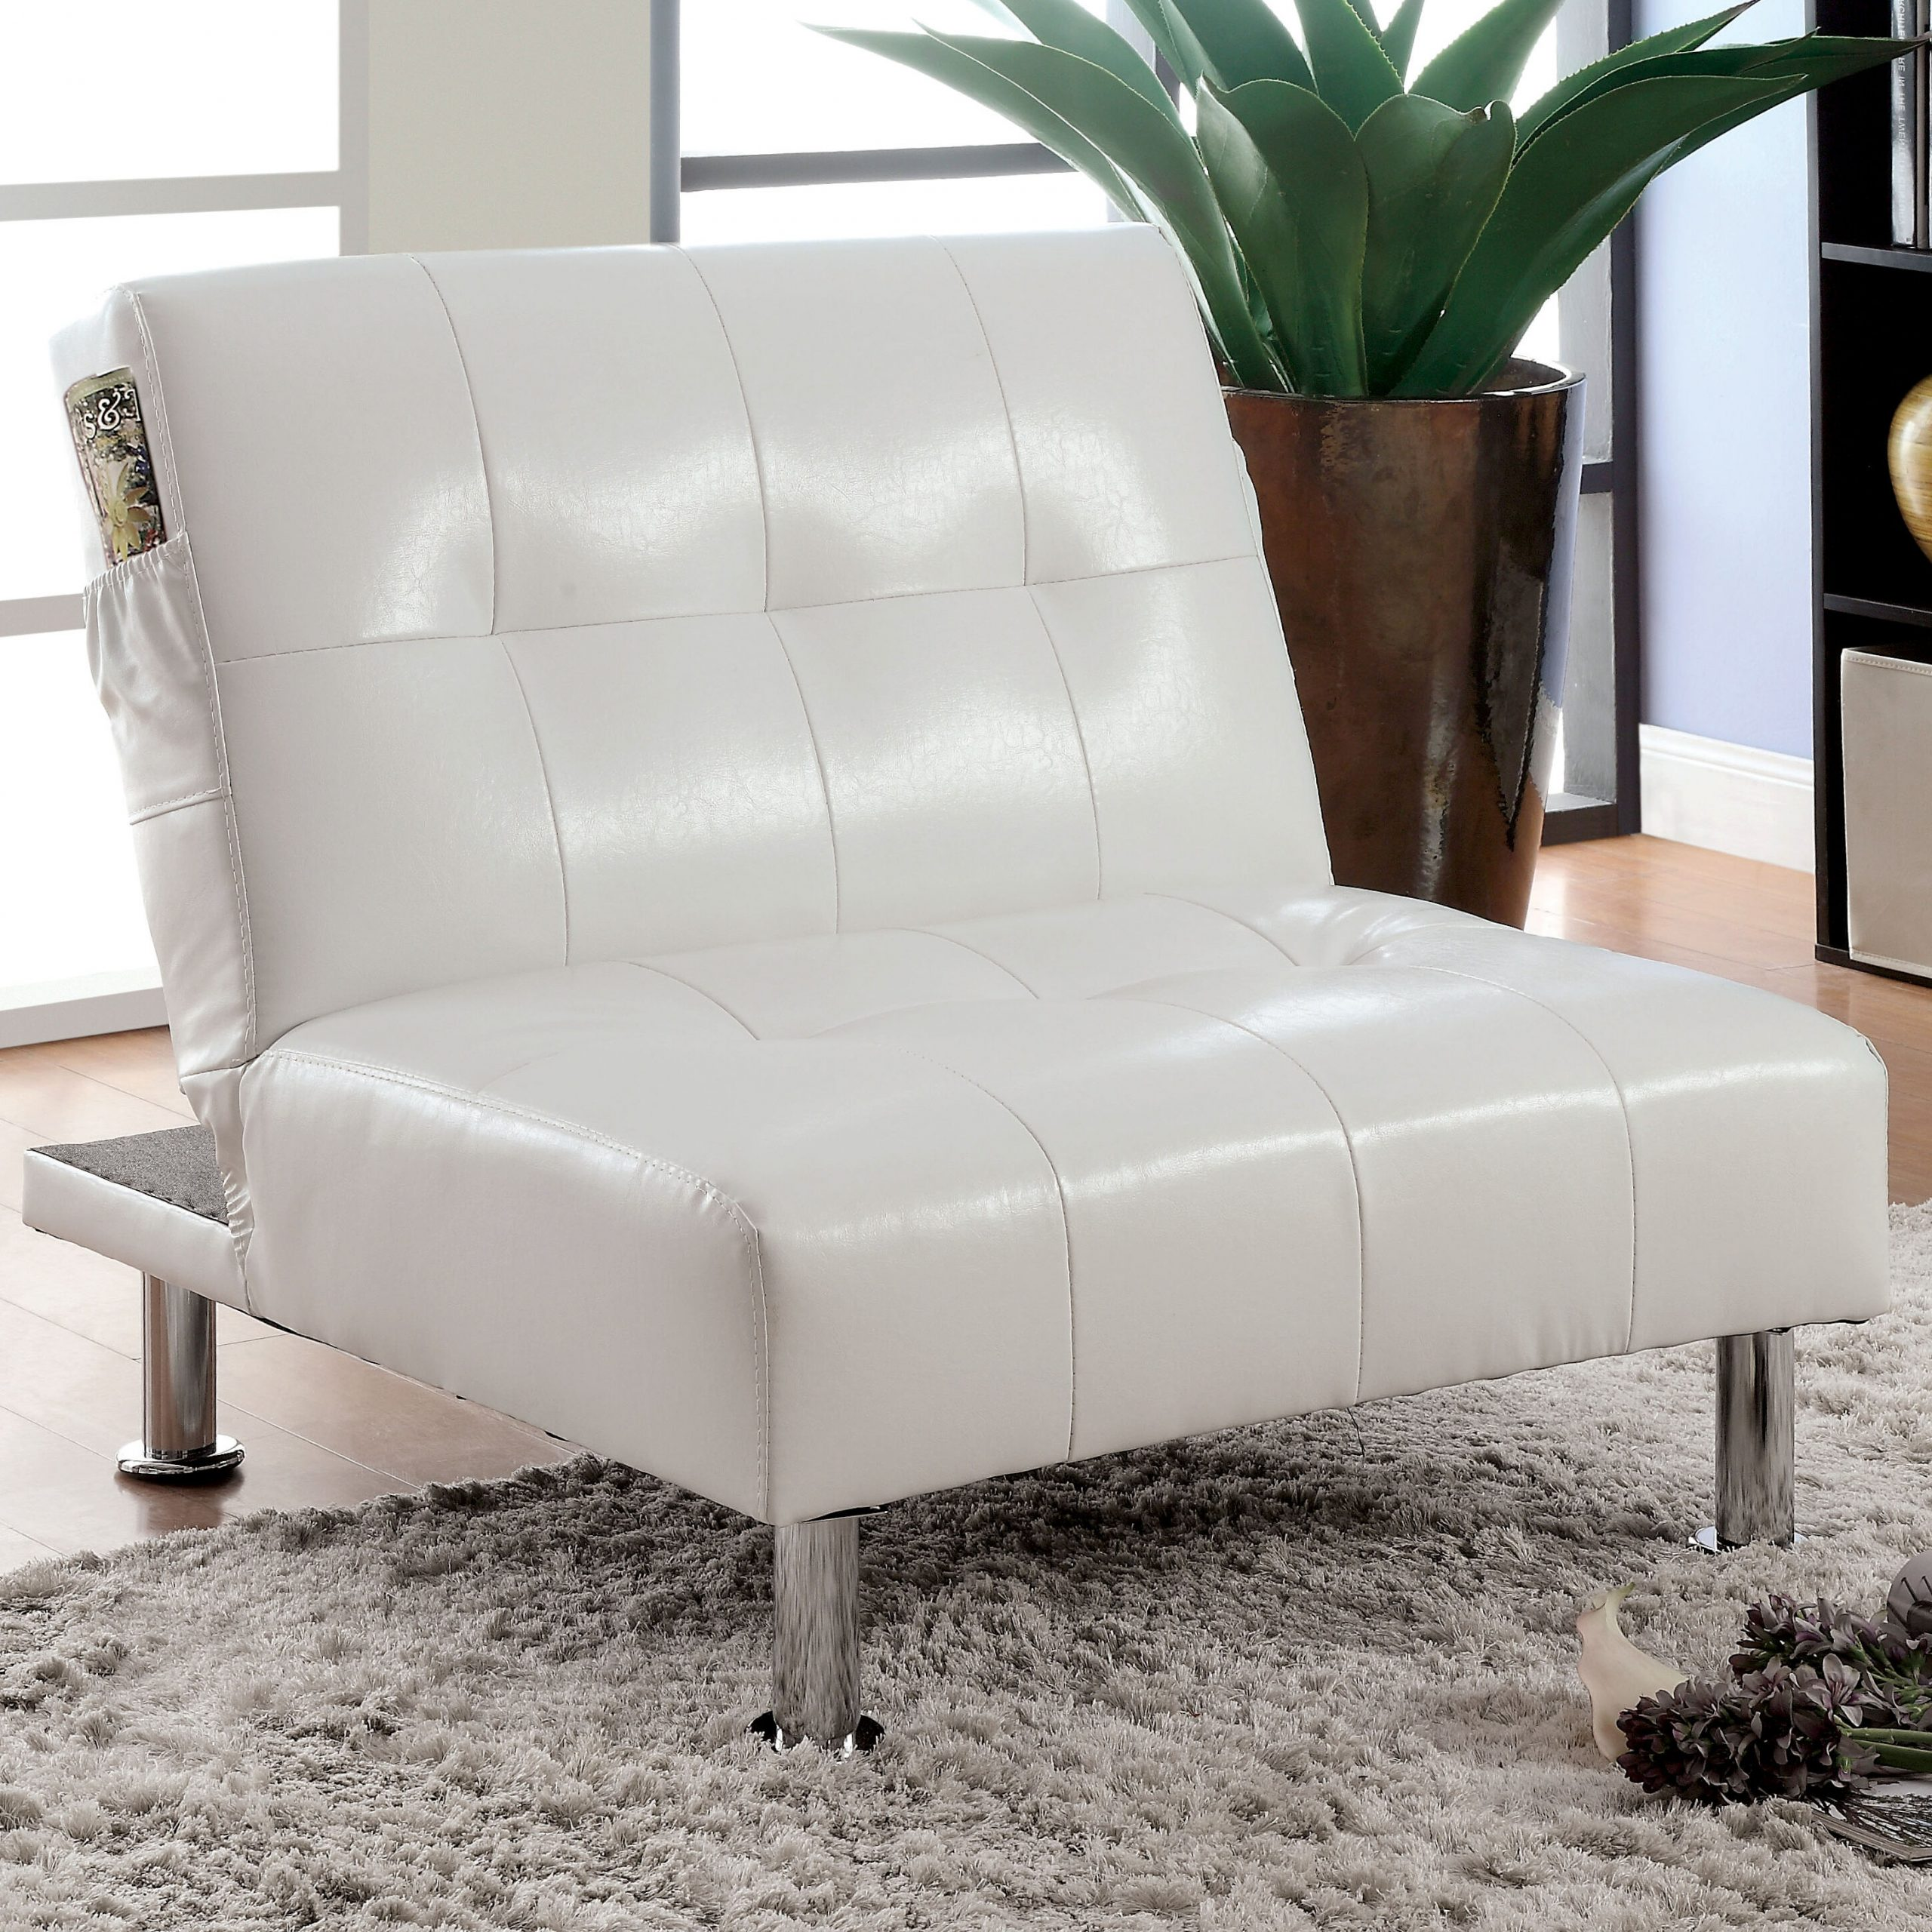 Convertible Solid Accent Chairs You'Ll Love In 2020 With Regard To Perz Tufted Faux Leather Convertible Chairs (View 6 of 15)